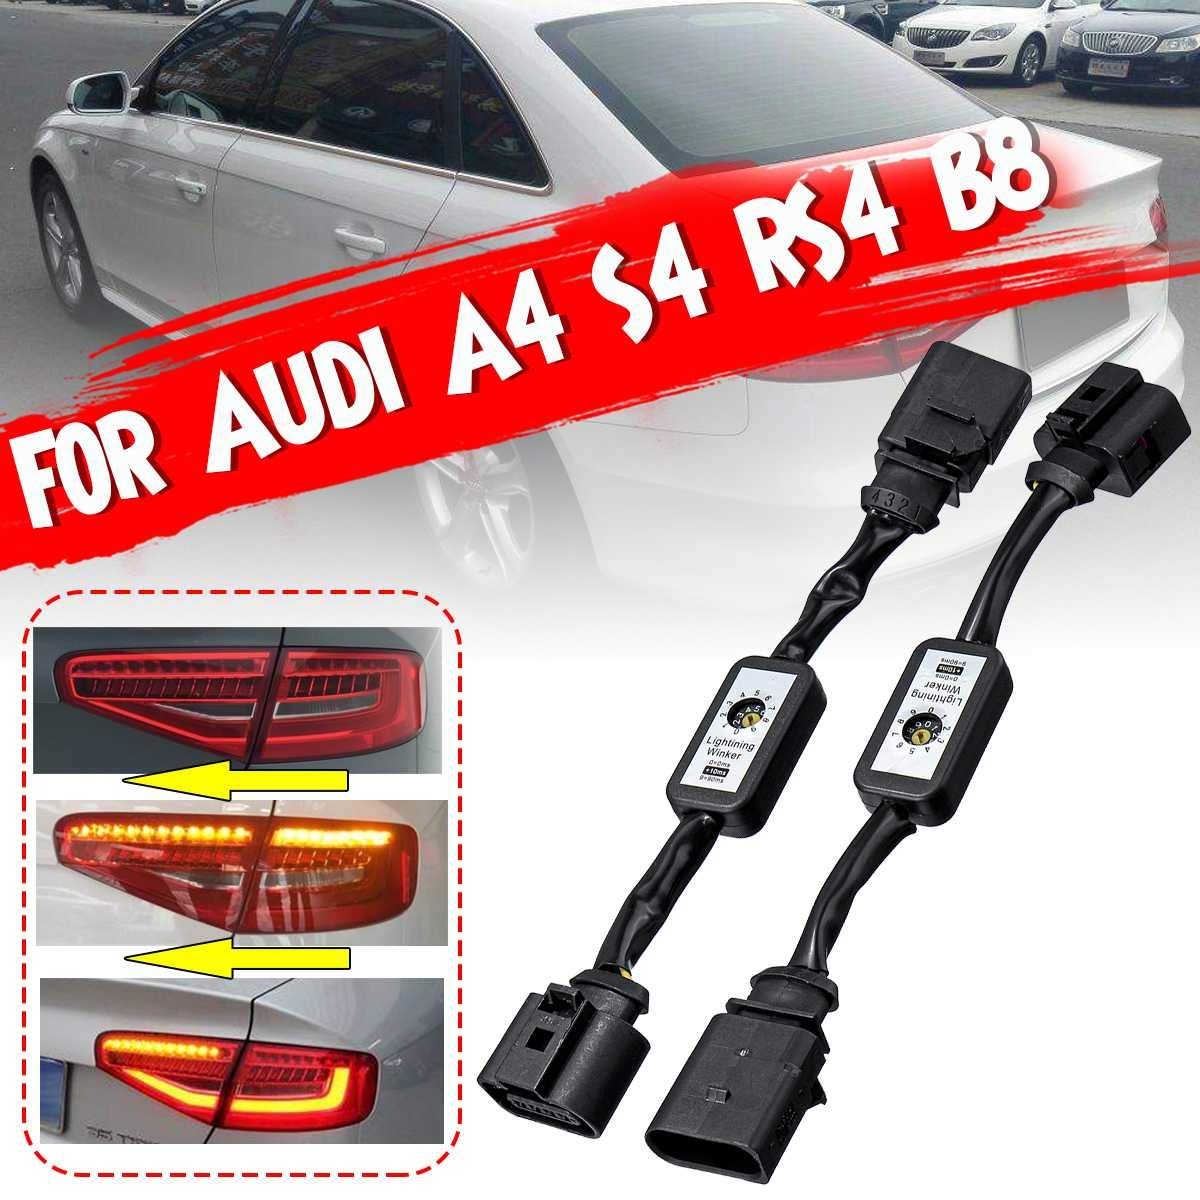 NEW 2Pcs Black Dynamic Turn Signal Indicator LED Taillight Add-on Module Cable Wire Harnes For Audi A4 S4 RS4 B8 2010-2019